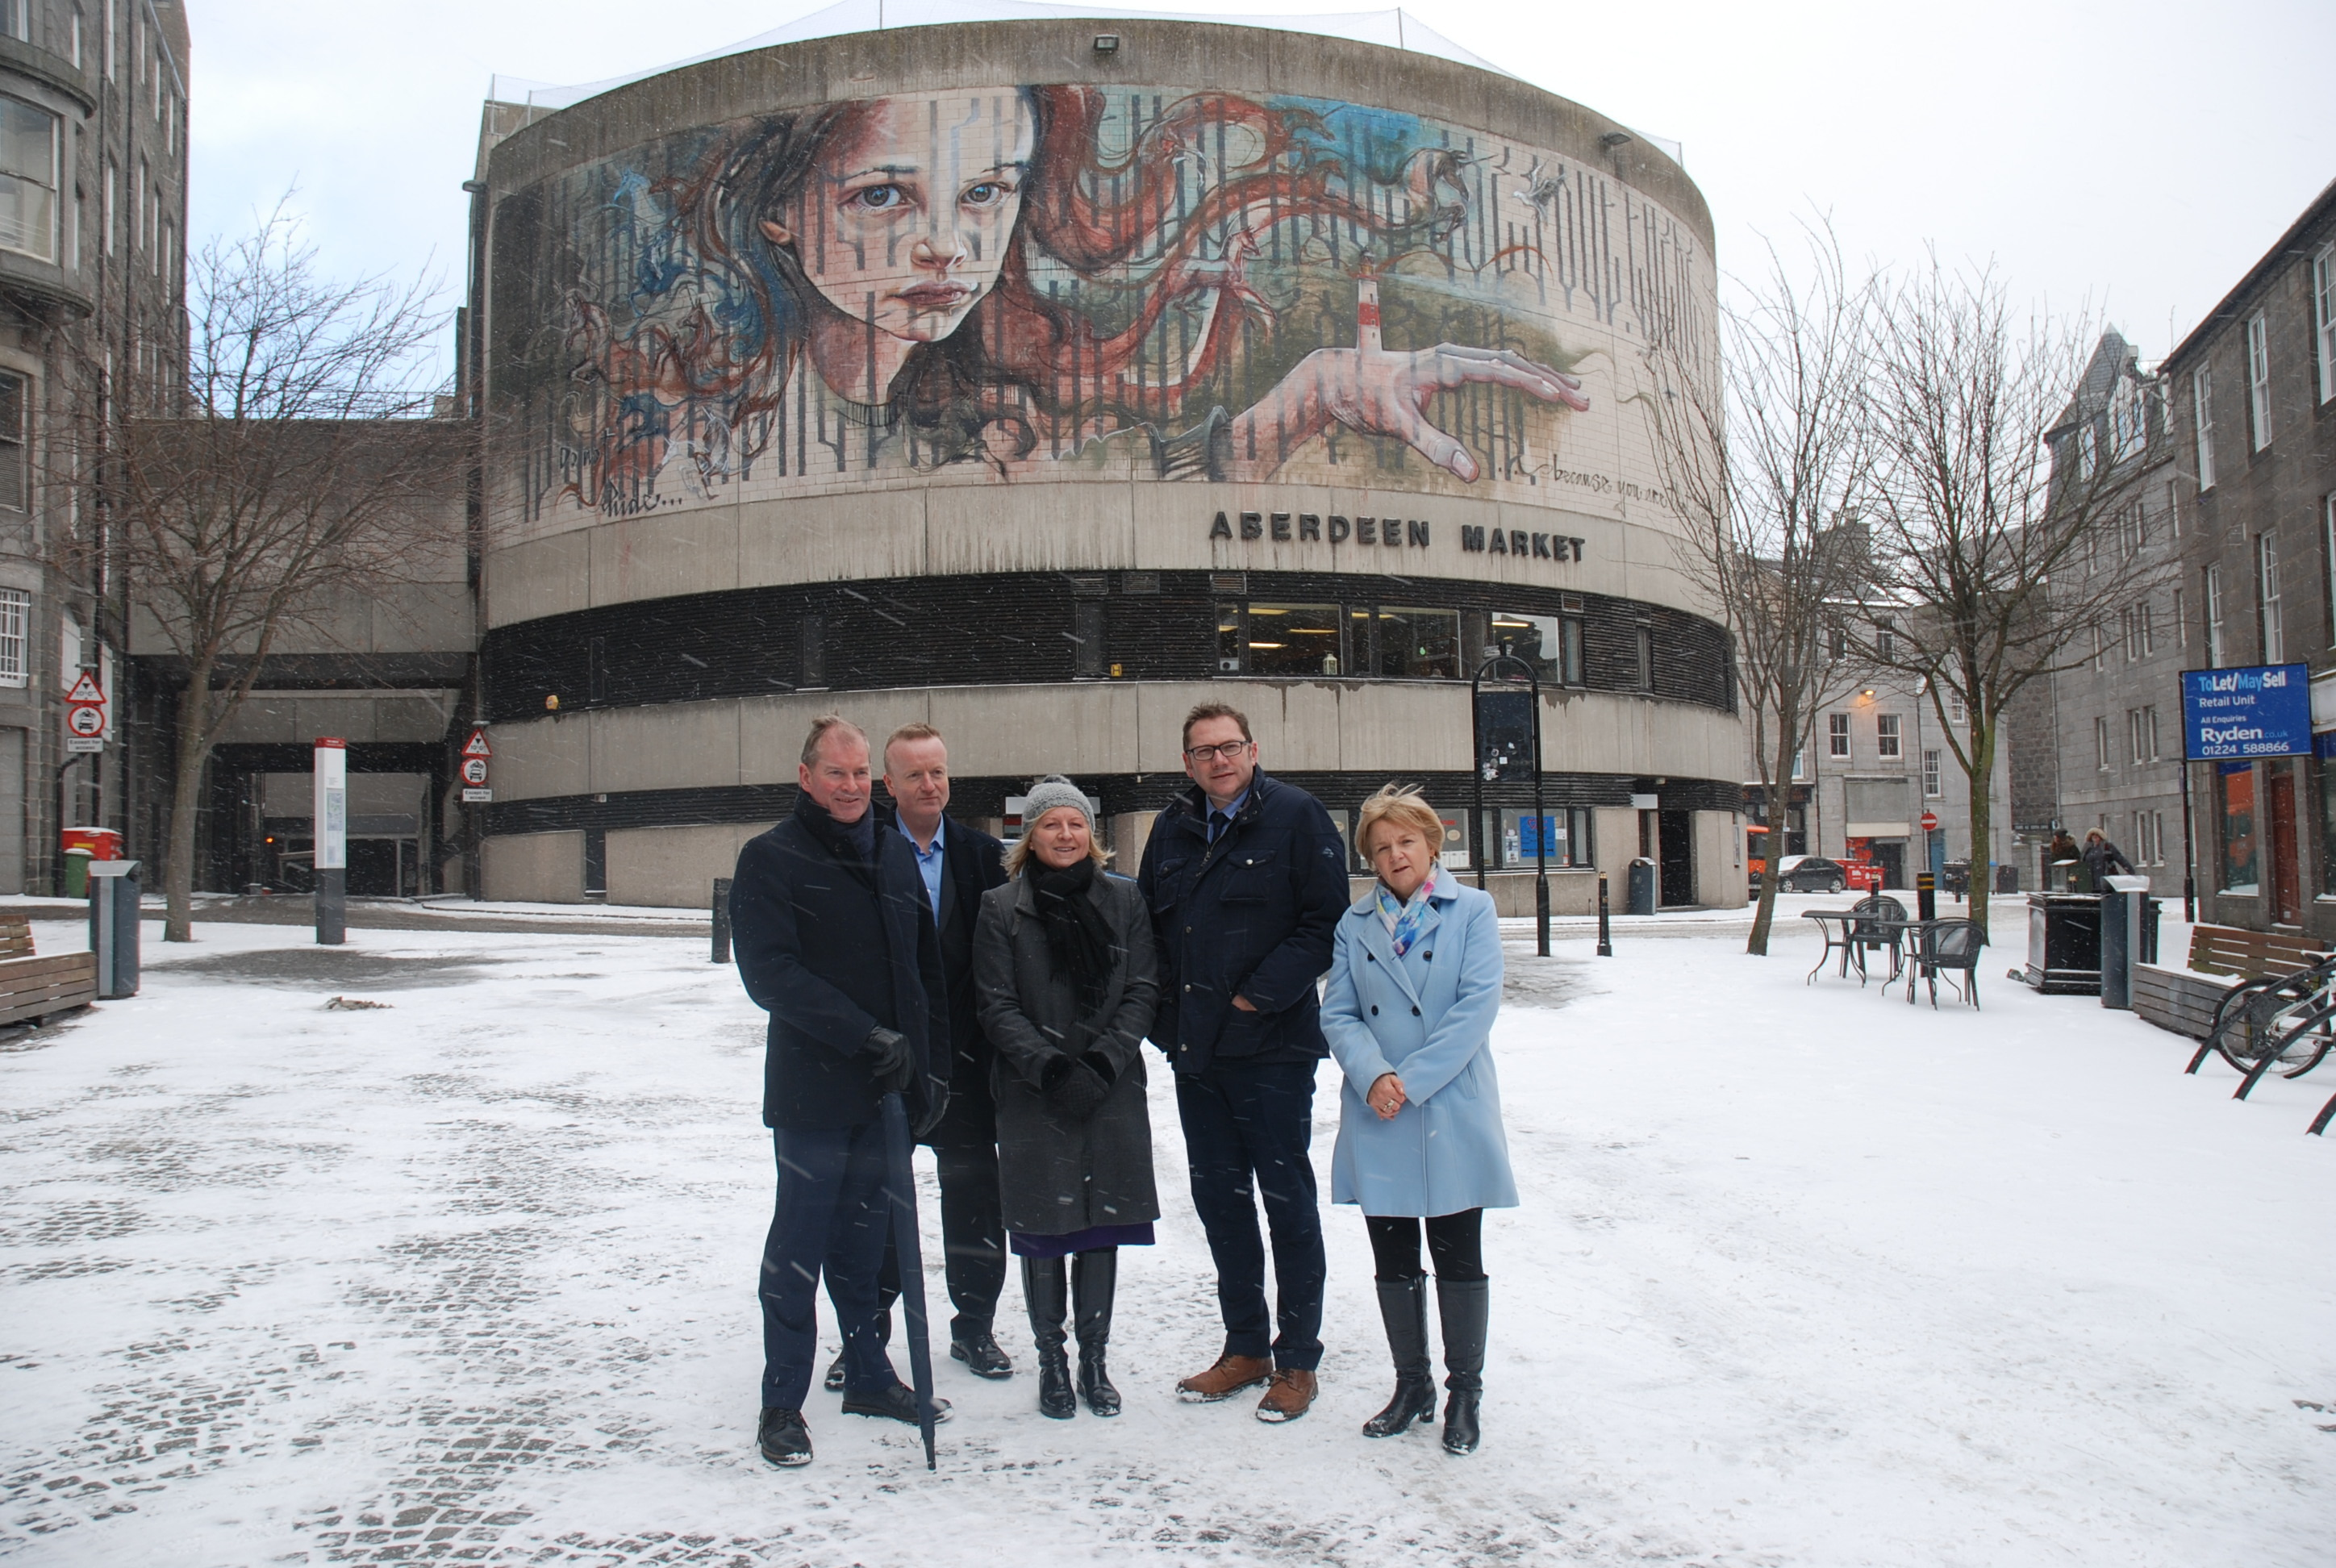 Kevin Milne, group treasurer, Aberdeen Standard Investments, Adrian Watson, chief executive of Aberdeen Inspired, Elaine Farquharson-Black, Partner at Burness Paull and Aberdeen City Council co-leaders Cllr Douglas Lumsden and Councillor Jenny Laing.